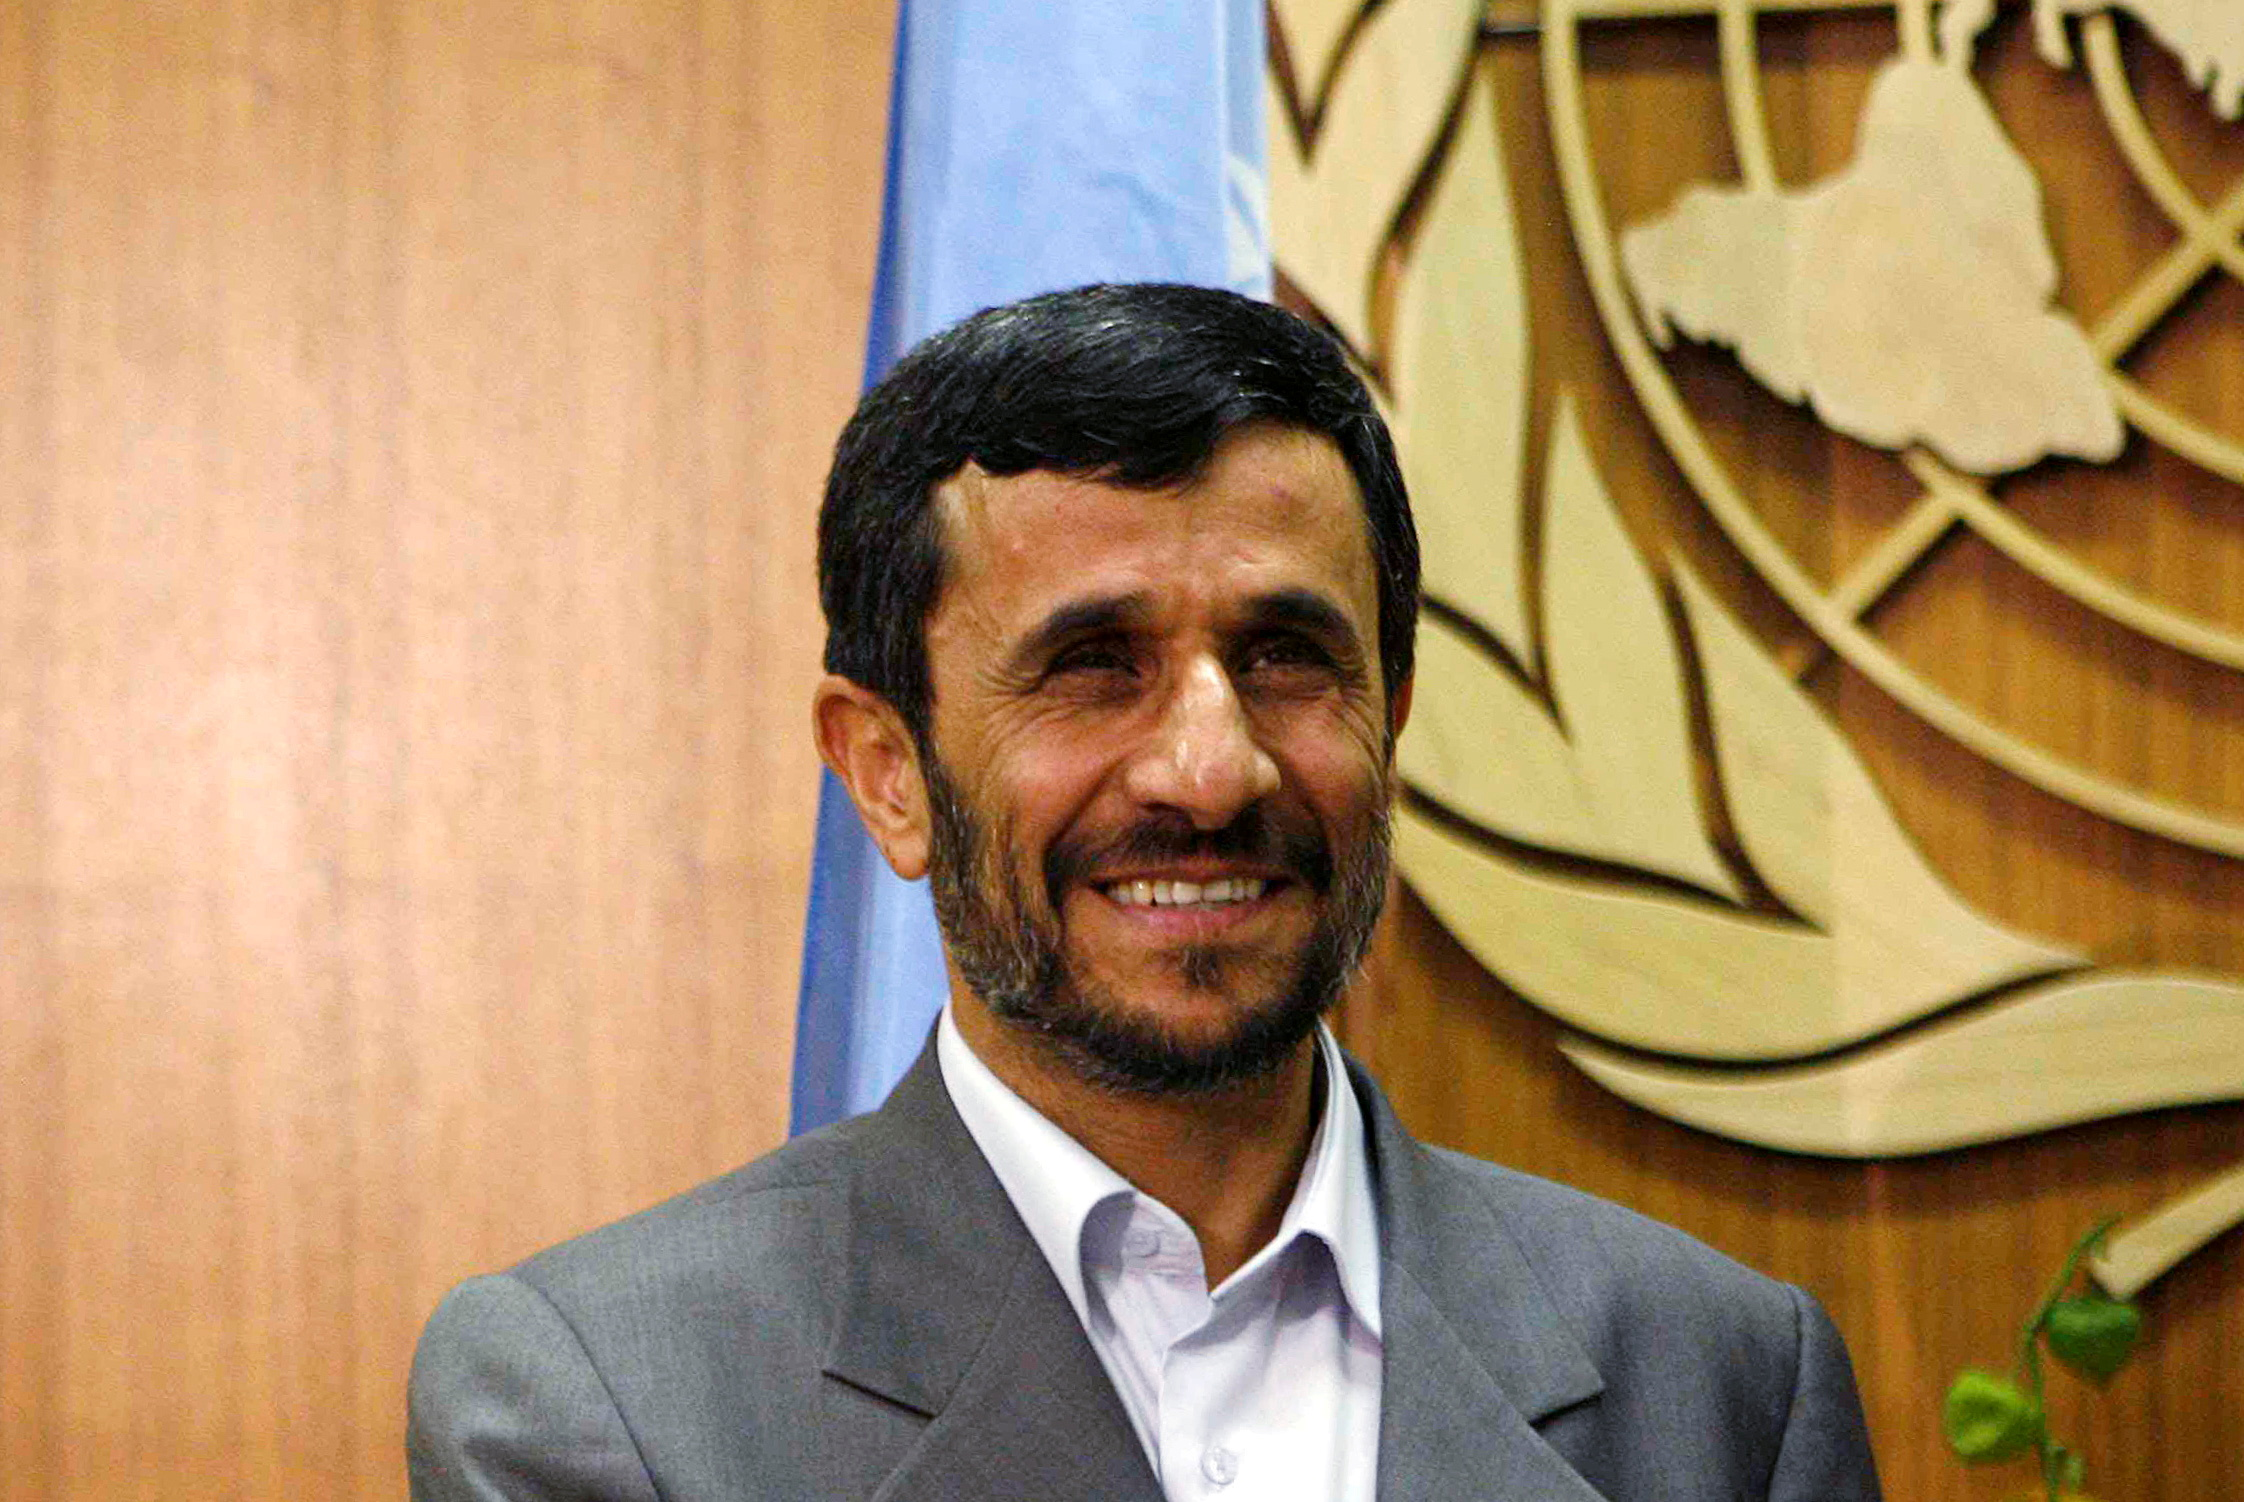 Iran's then President Mahmoud Ahmadinejad smiles as he meets with United Nations Secretary-General Ban Ki-moon at the United Nations in New York September 24, 2007. REUTERS/Eric Thayer/File Photo